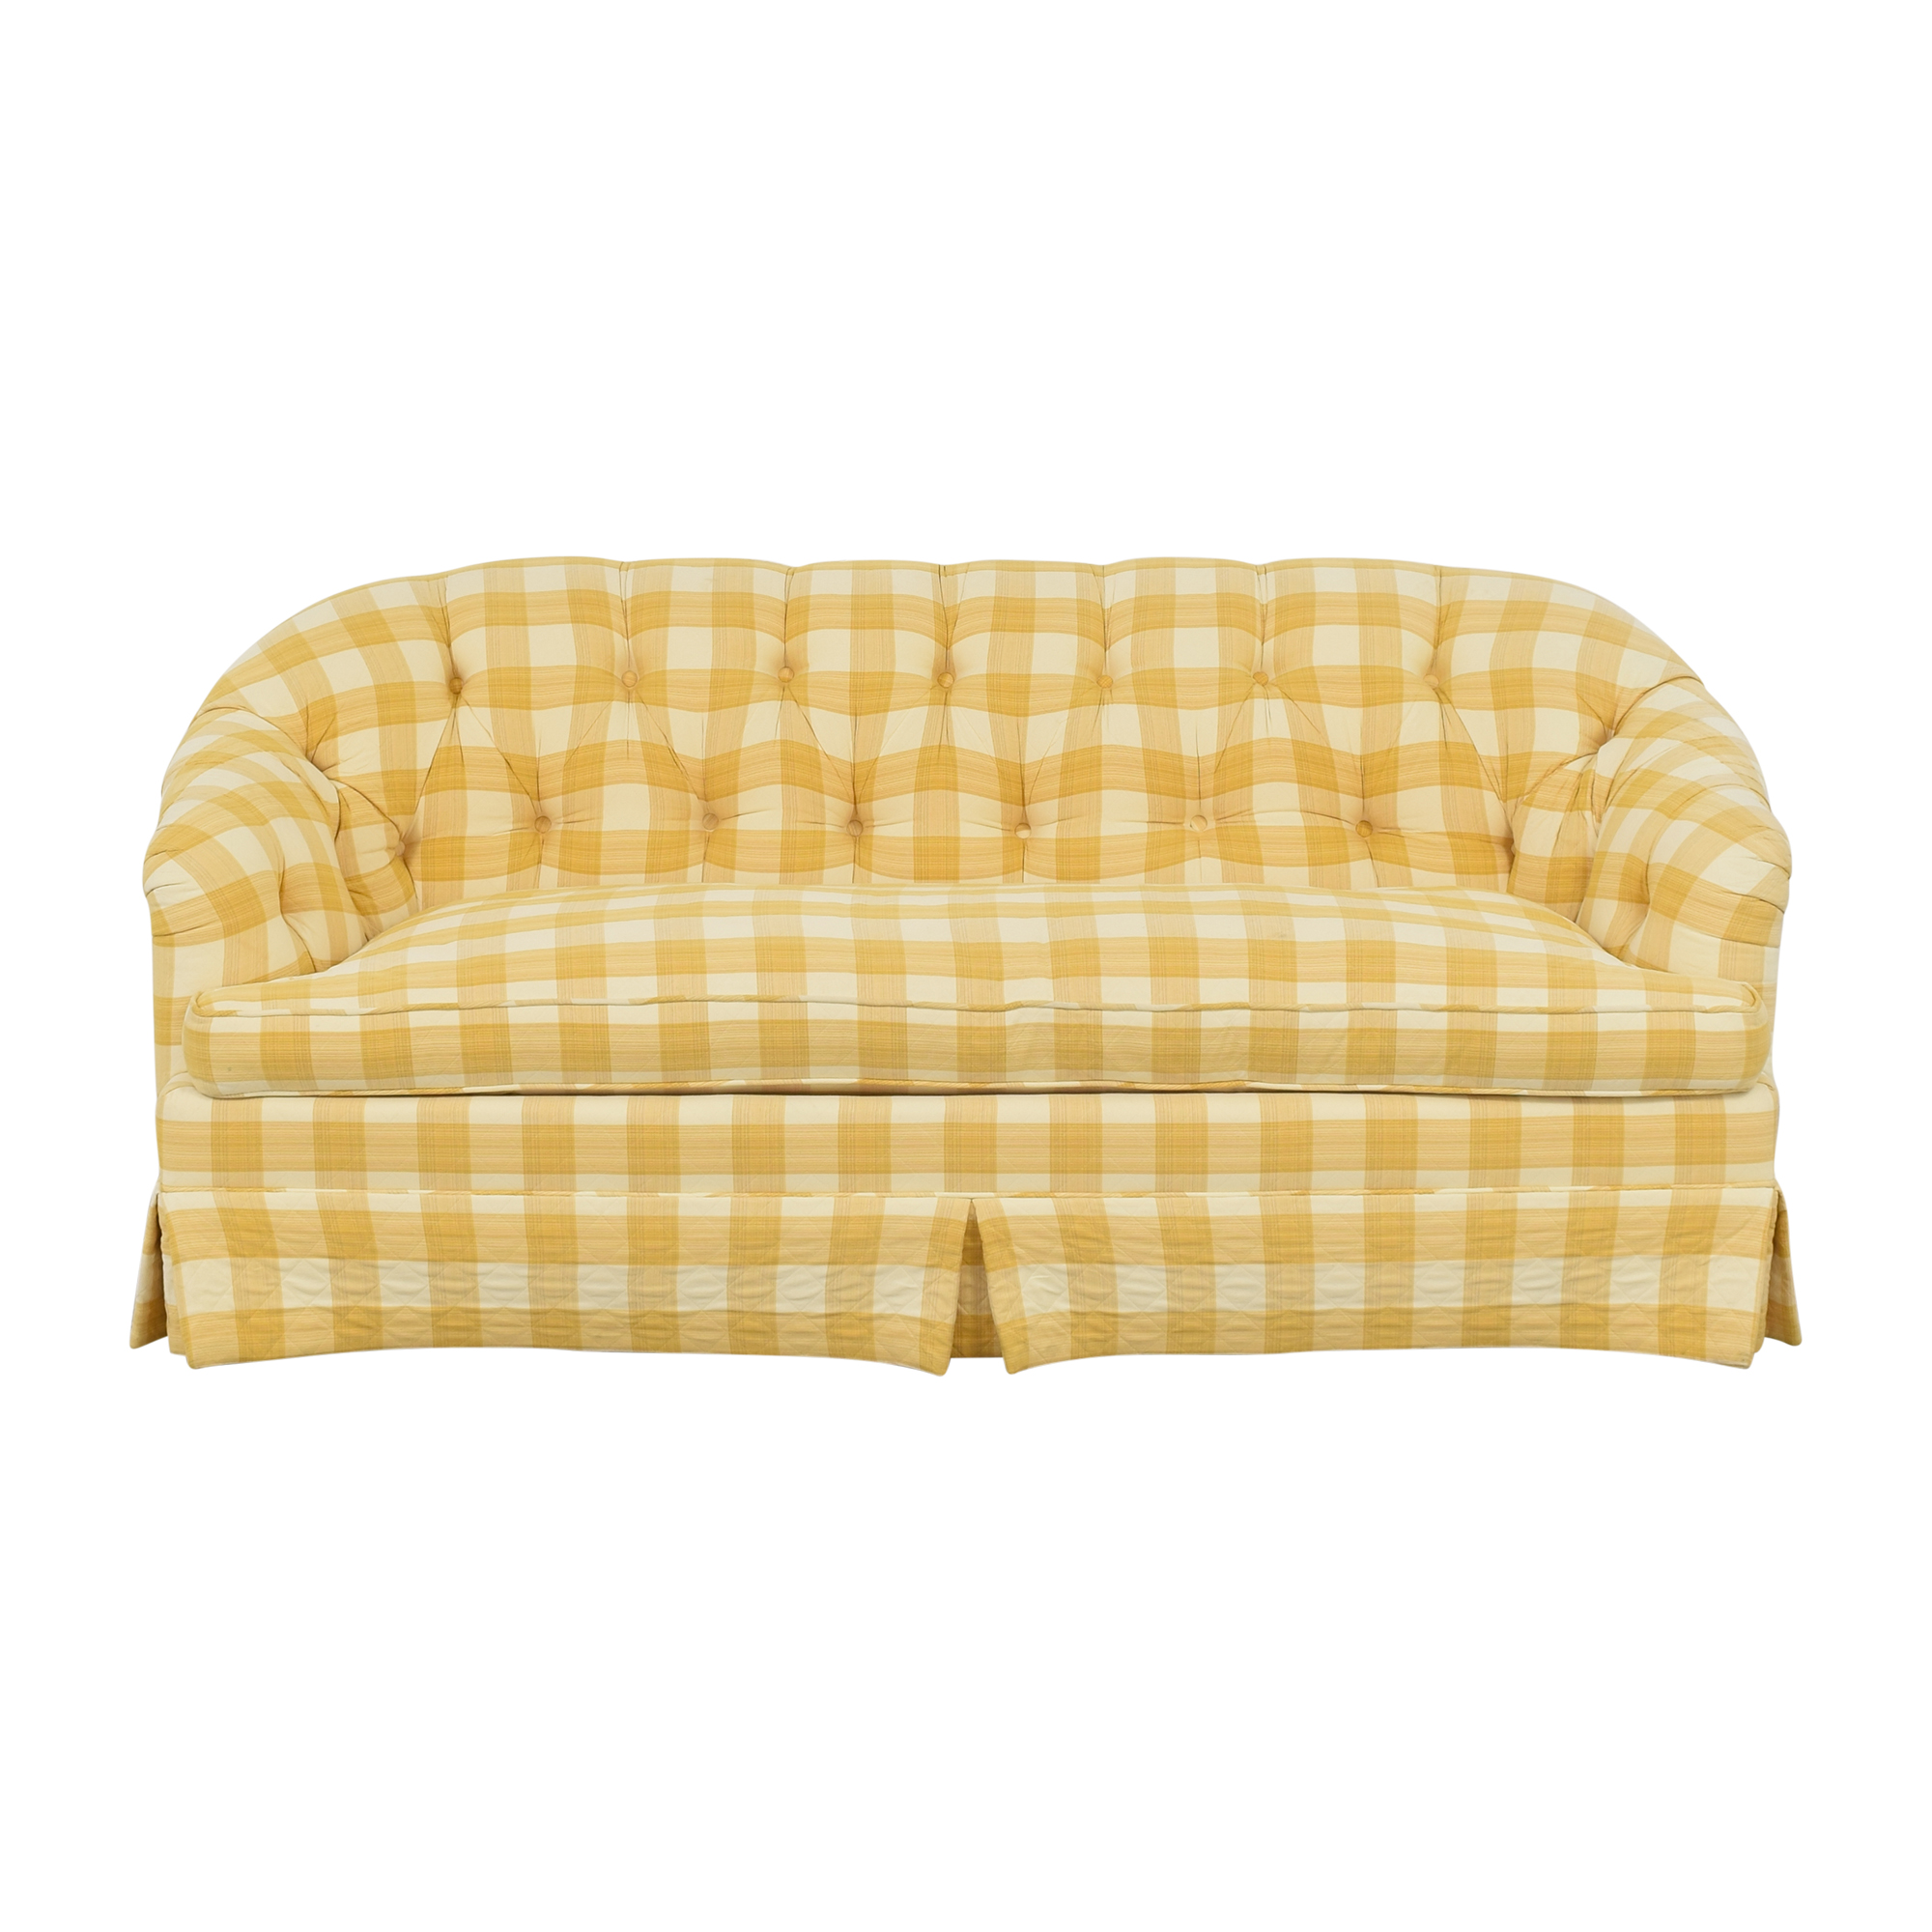 Charles Stewart Company Charles Stewart Company Chesterfield Sofa dimensions